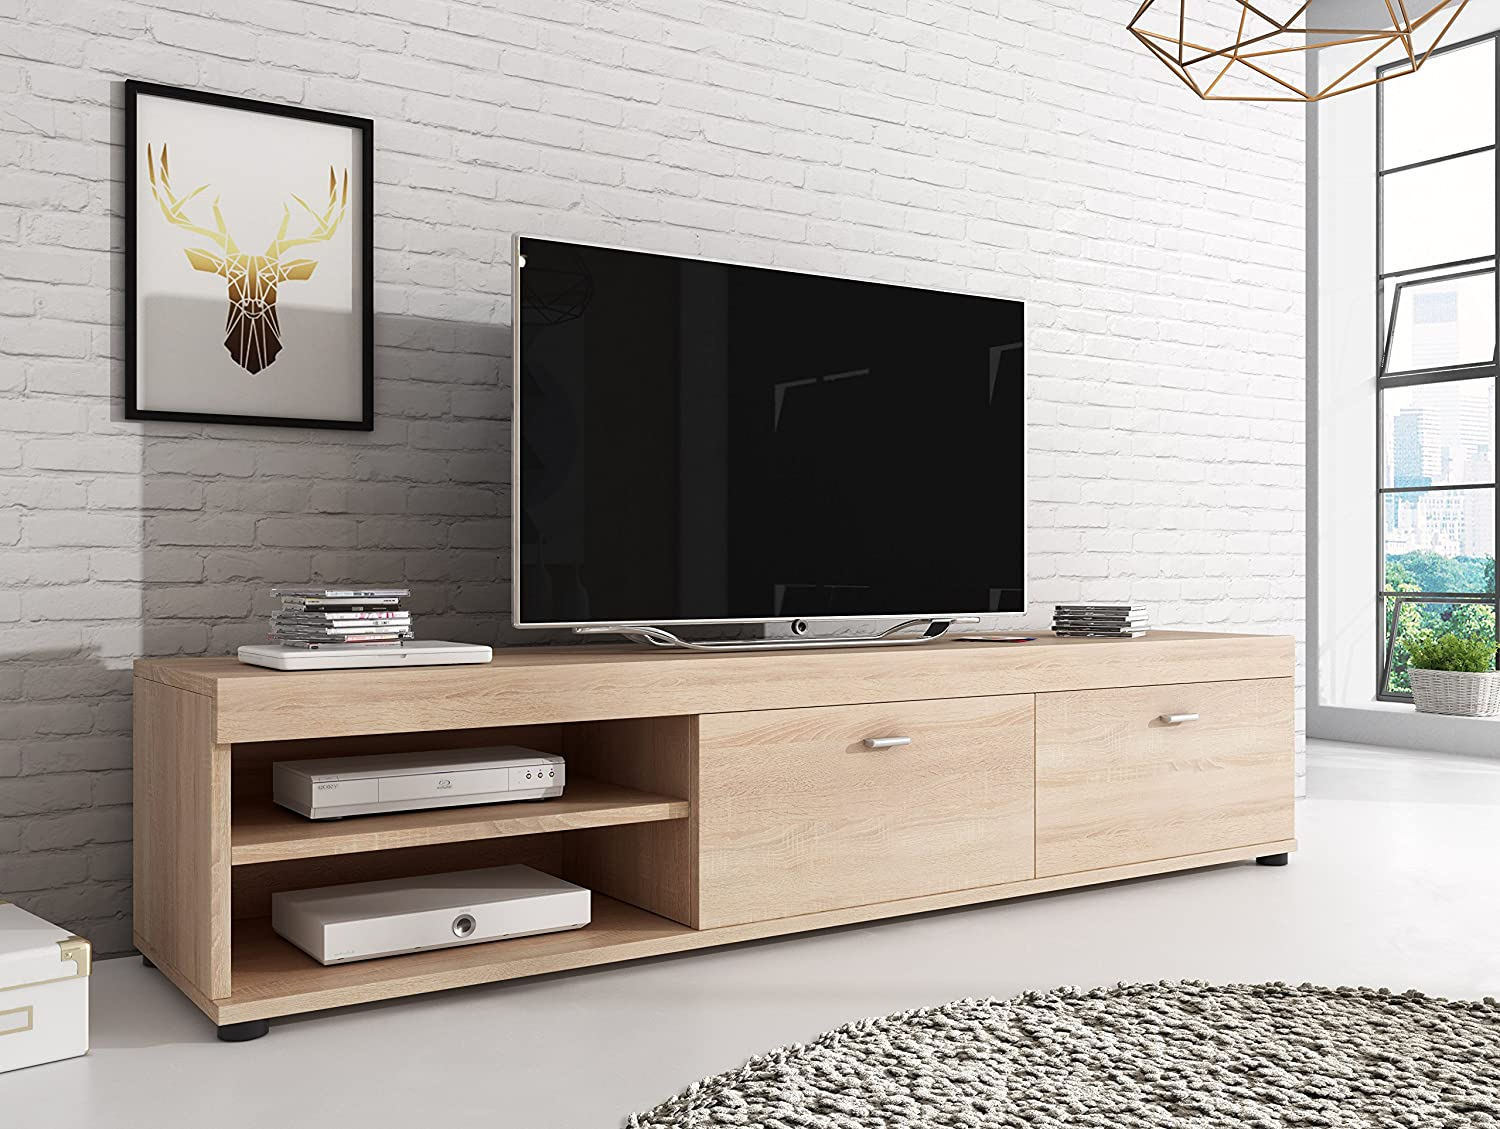 Tv Unit Cabinet Stand Elsa Sonoma Light Oak Wood Effect 140 Cm  # Meuble Tv Sonoma